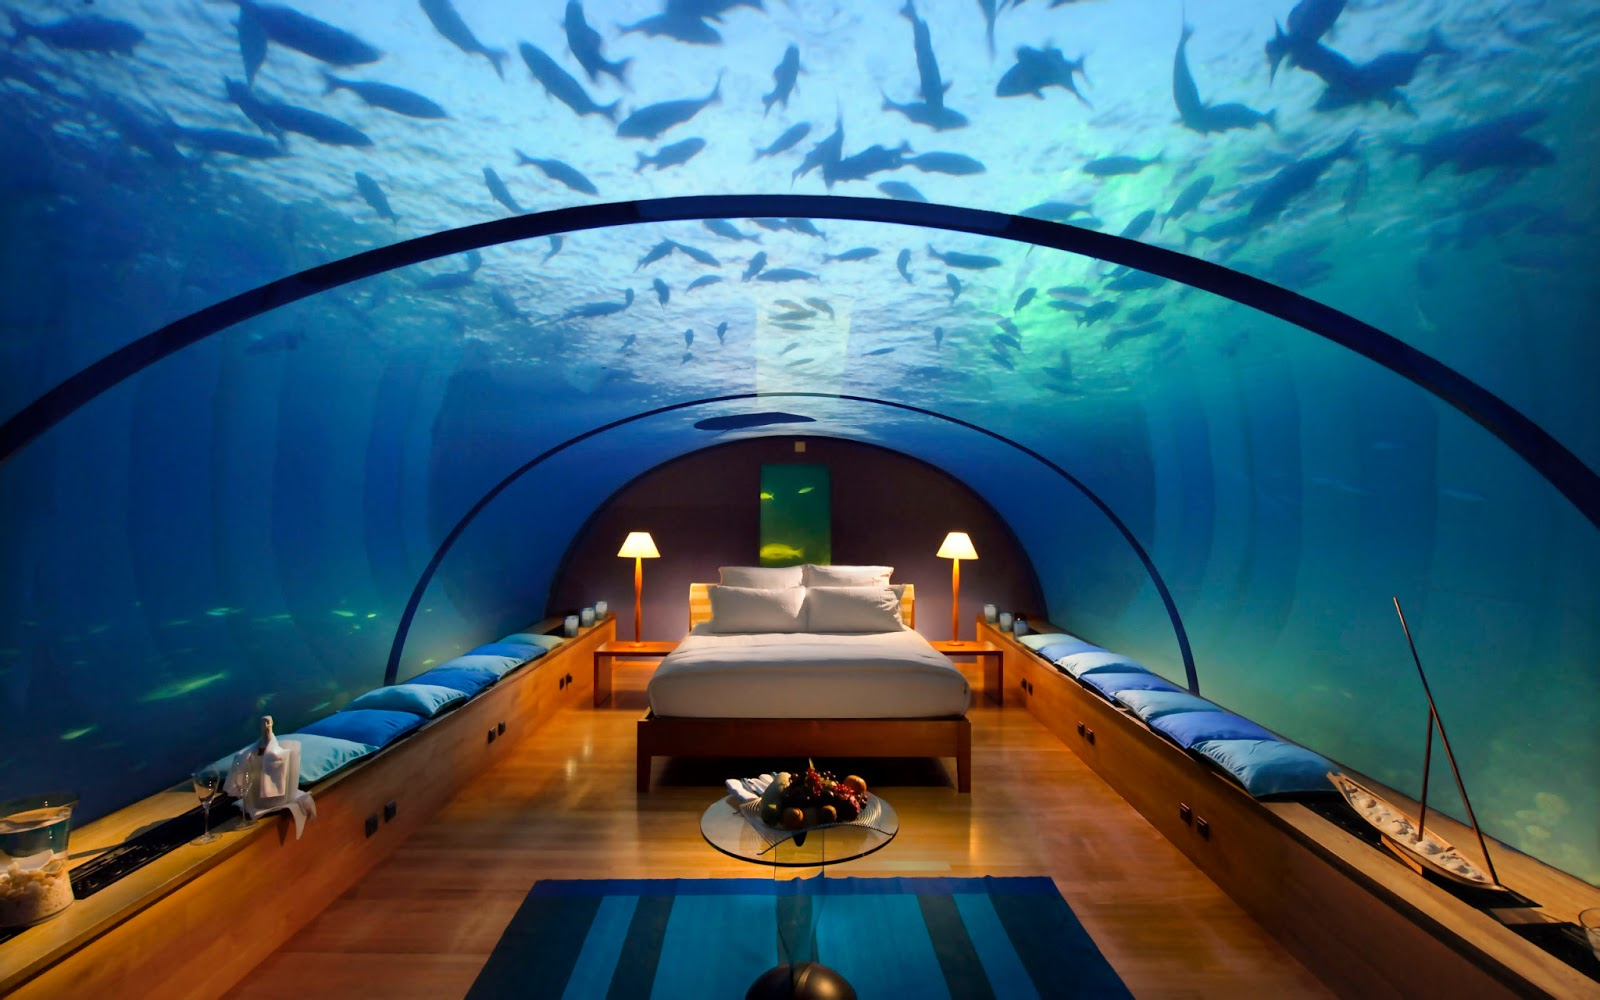 Dubai Always Keeps On Surprising Us They Have The Best Architects And Now Advanced To Under Sea Level By Creating World S Largest